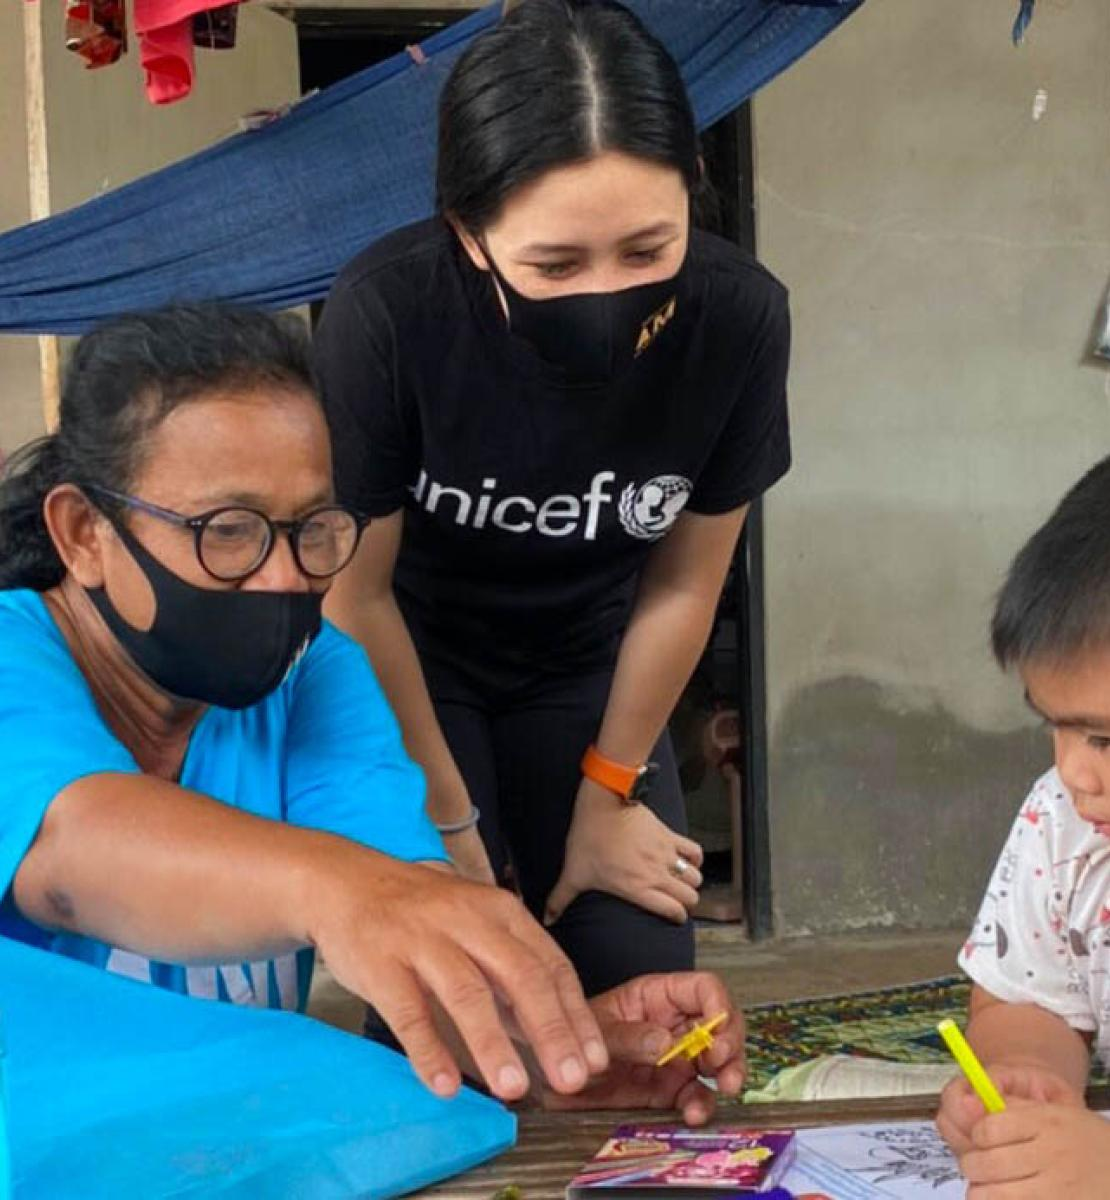 UNICEF volunteer, Rasa Pattikasemkul (centre), interacts with a young boy in a rare face-to-face meeting during the COVID-19 lockdown.